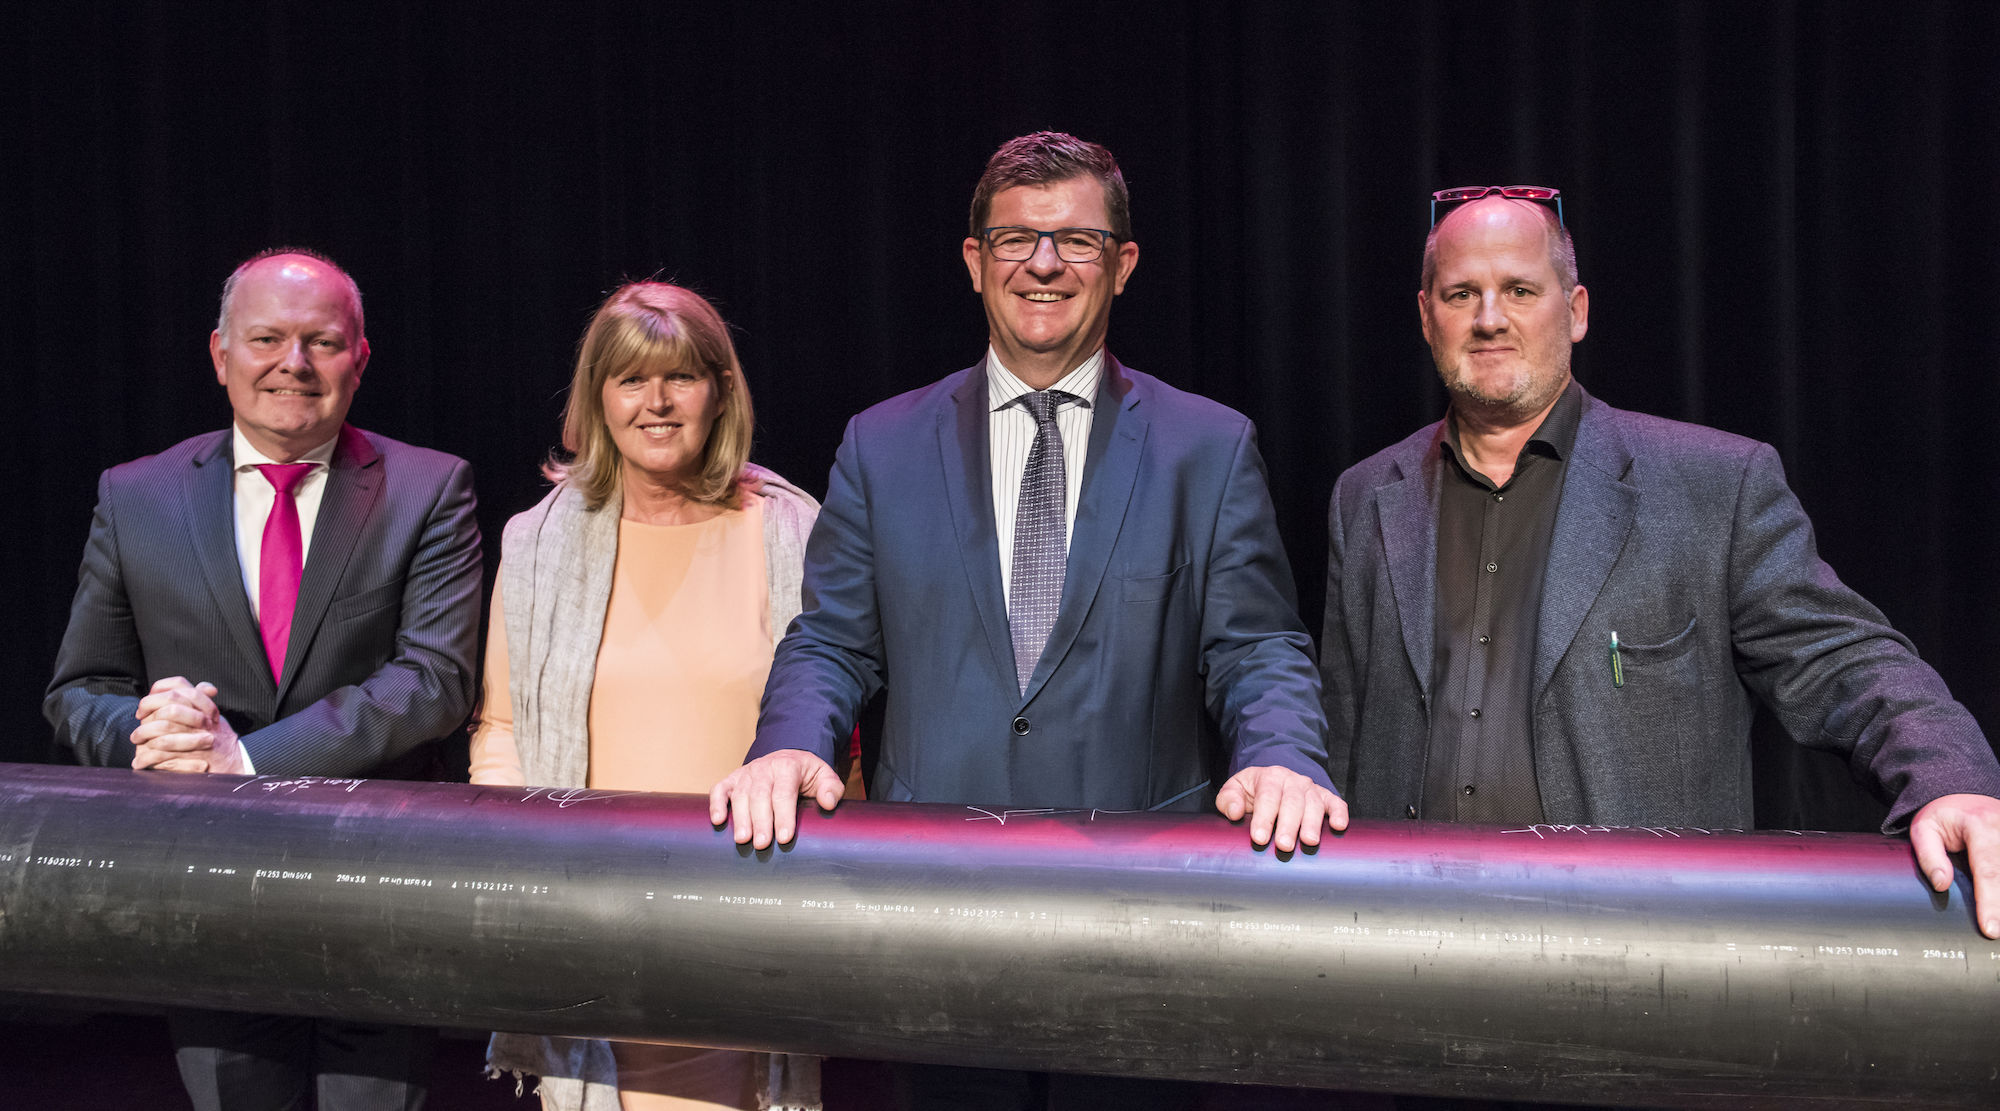 20180424_warmtecongres_00093.jpg